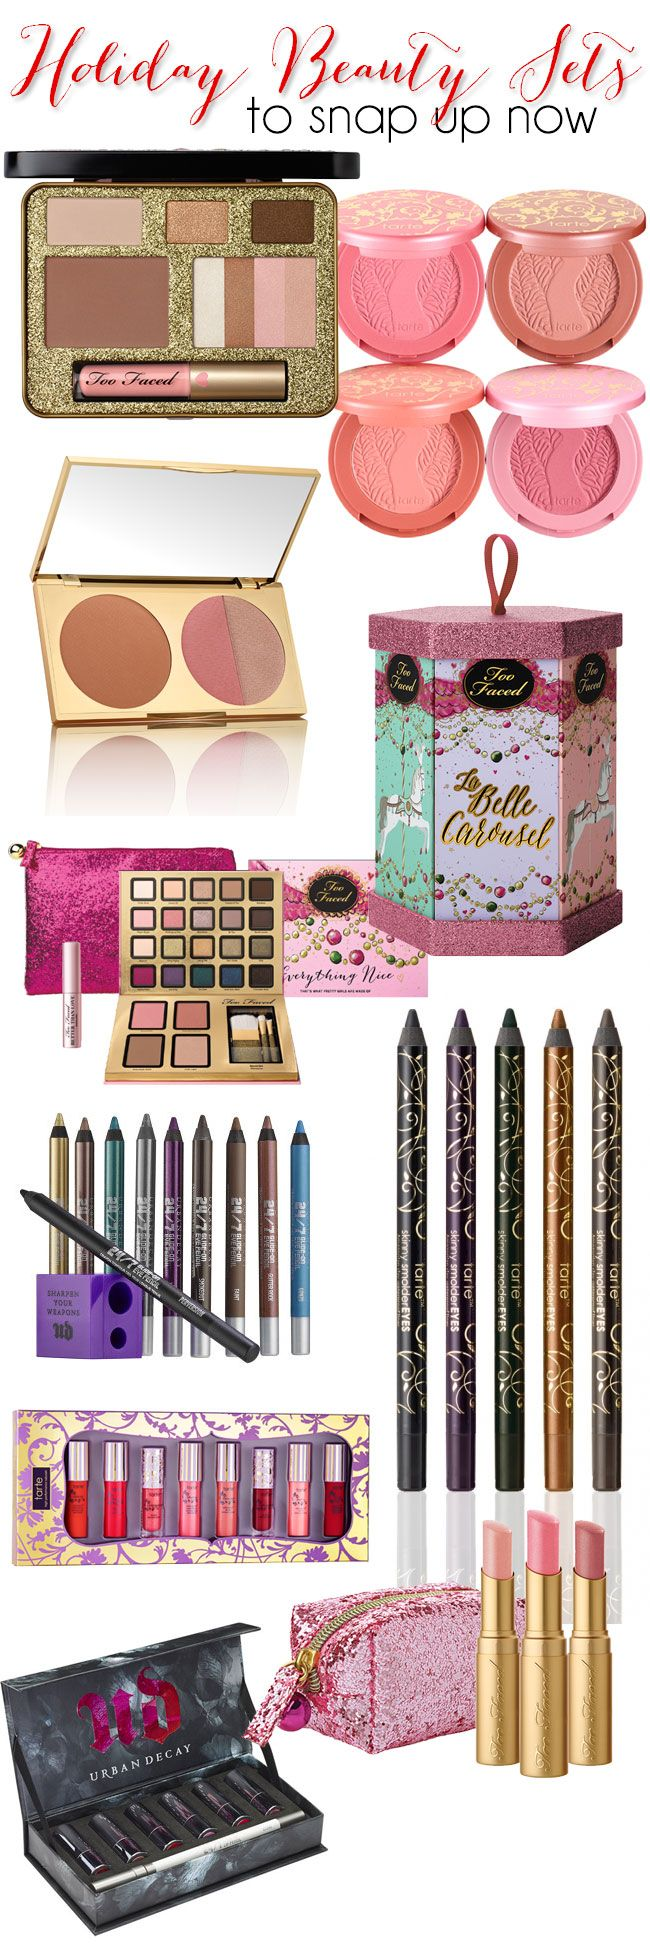 Early Holiday #makeup Gift Sets To Snap Up Now!